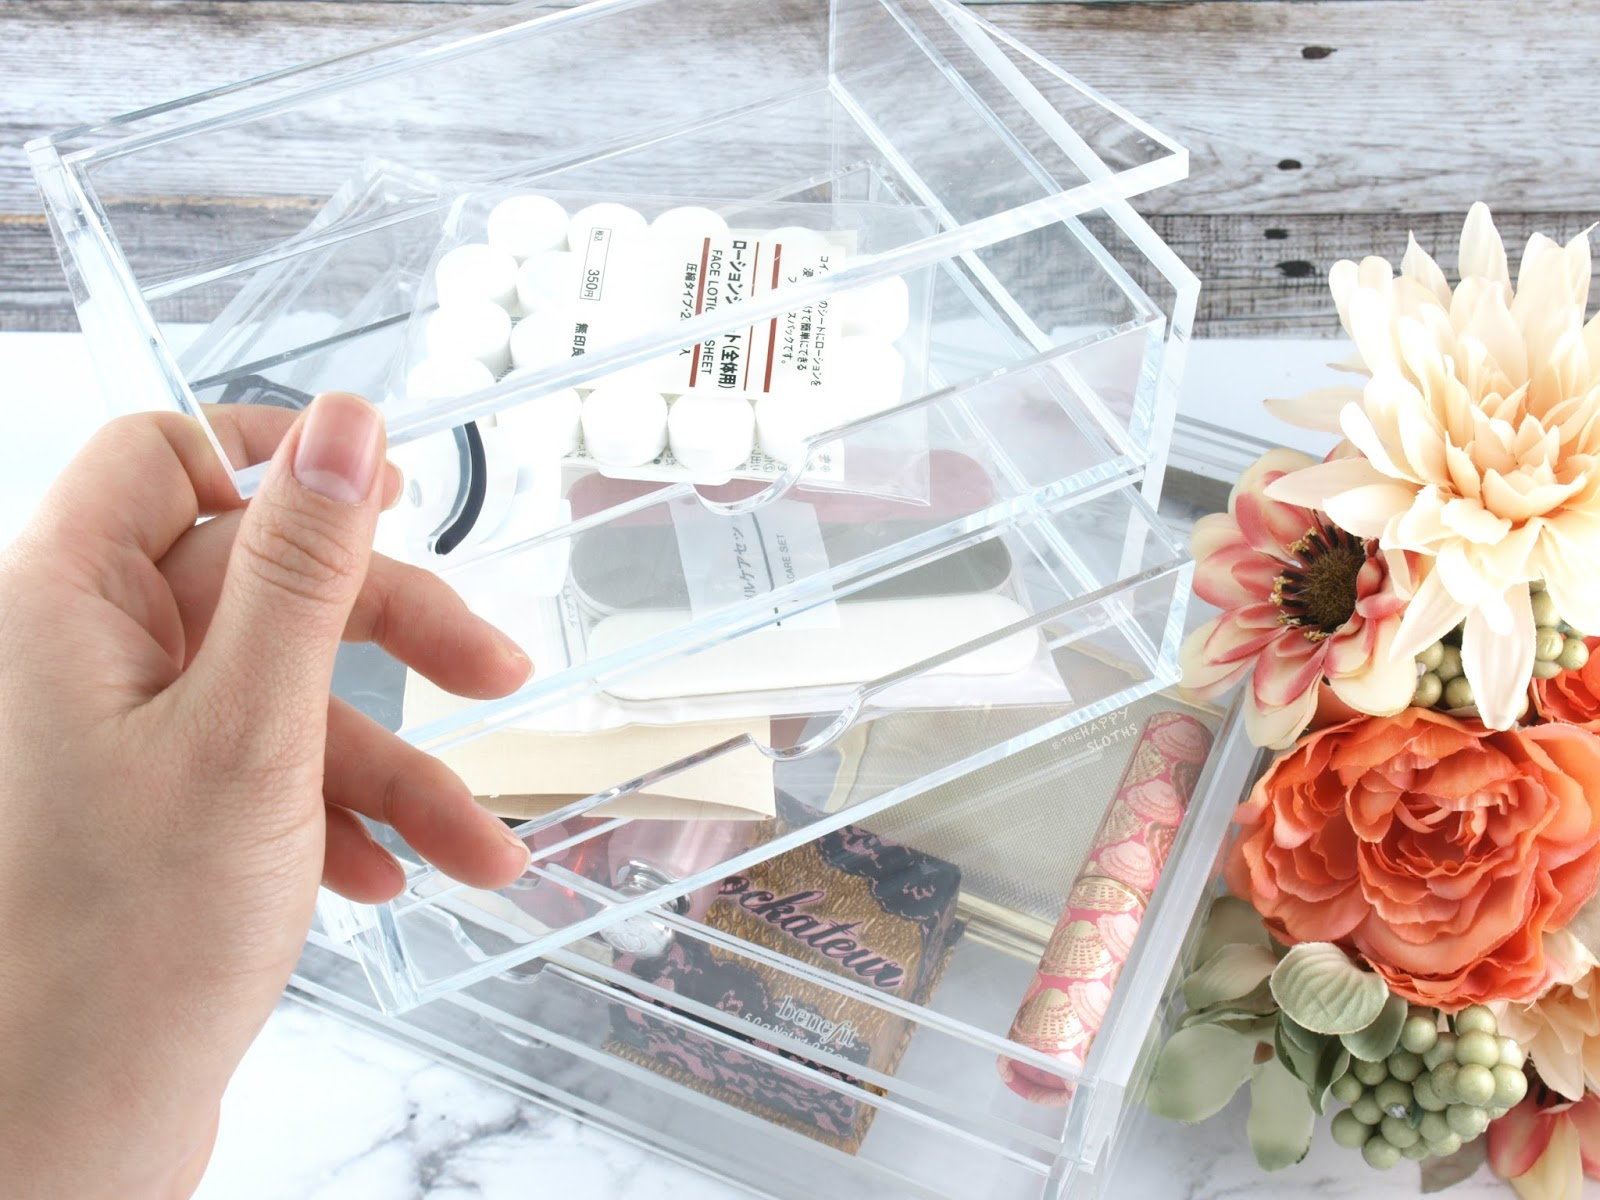 MUJI Acrylic Storage Review | Acrylic Case 2 Drawer & 3 Drawers